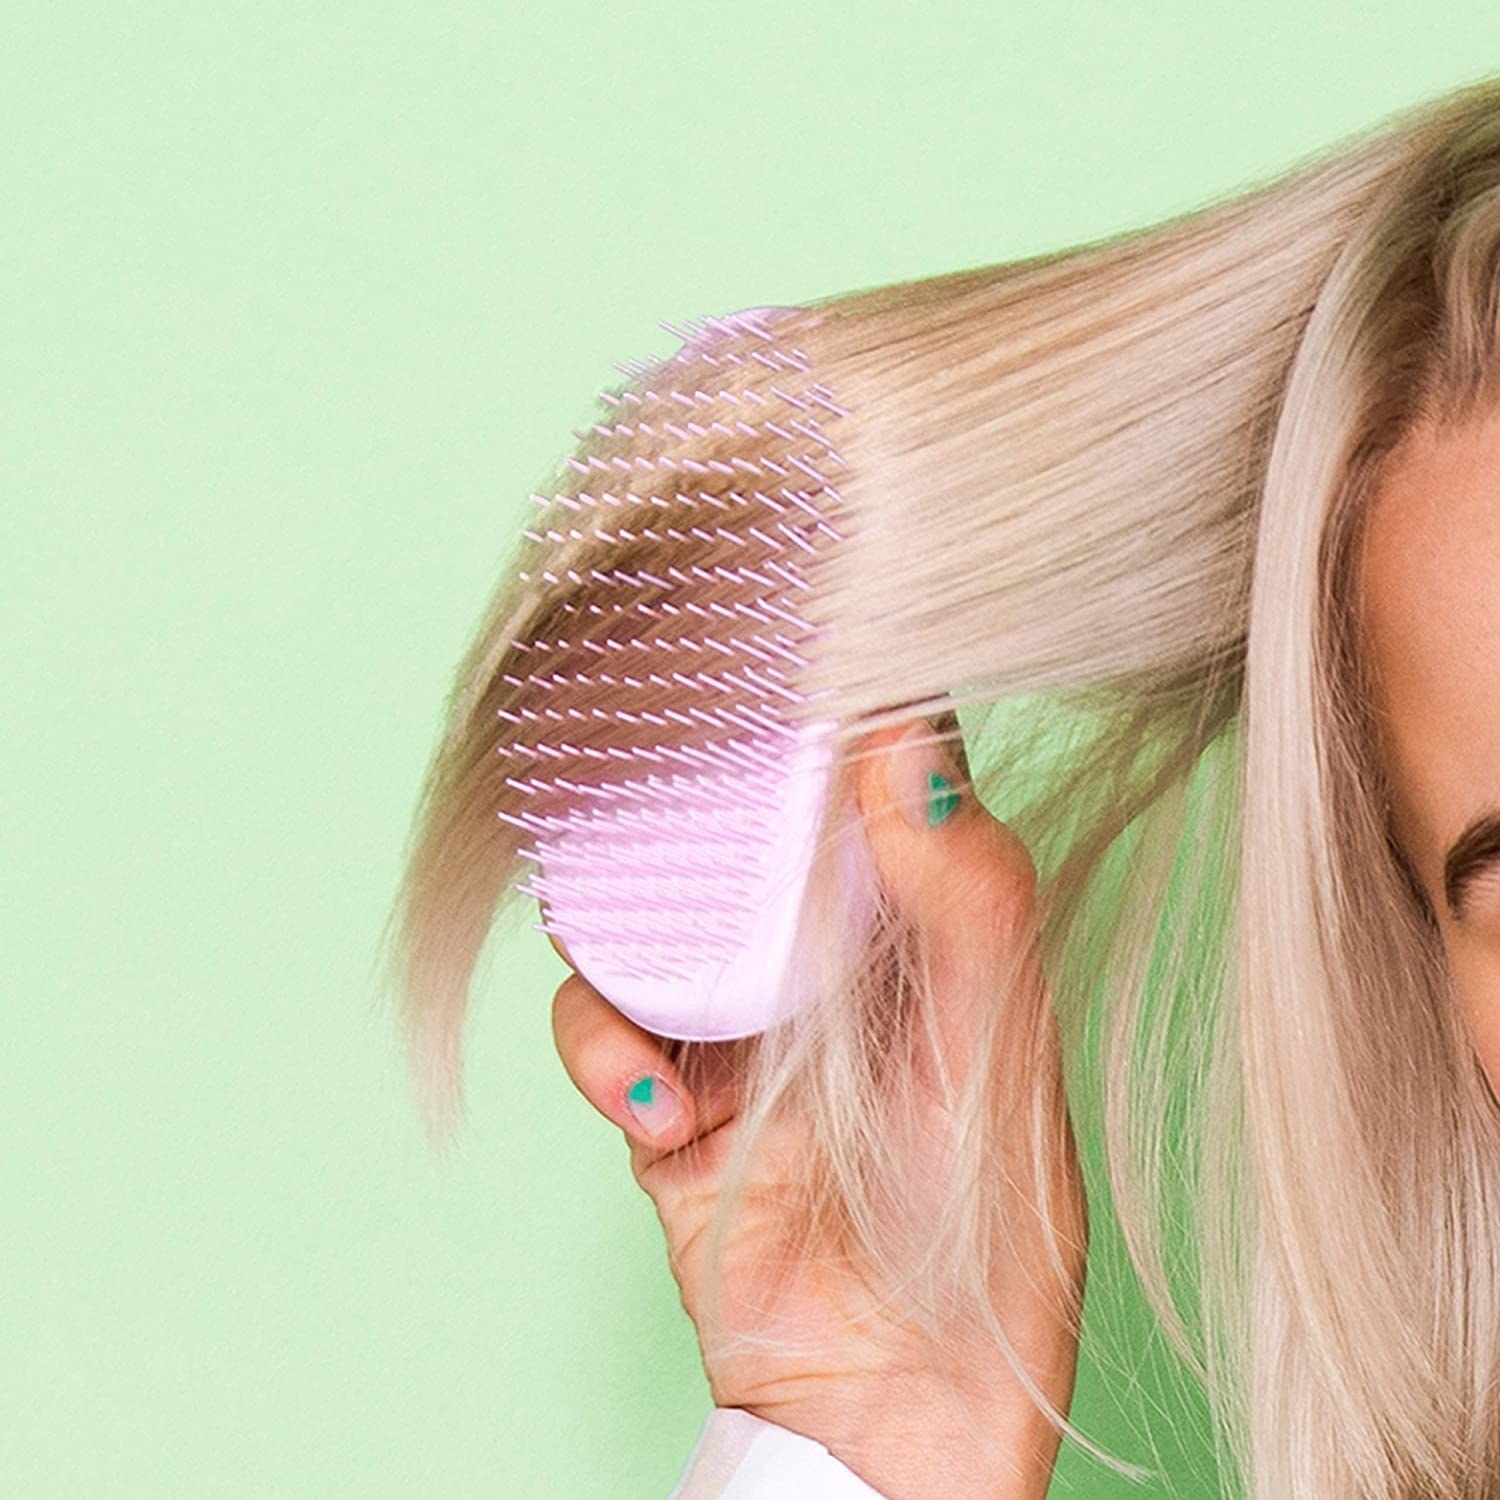 A person brushing their hair with the Tangle Teezer